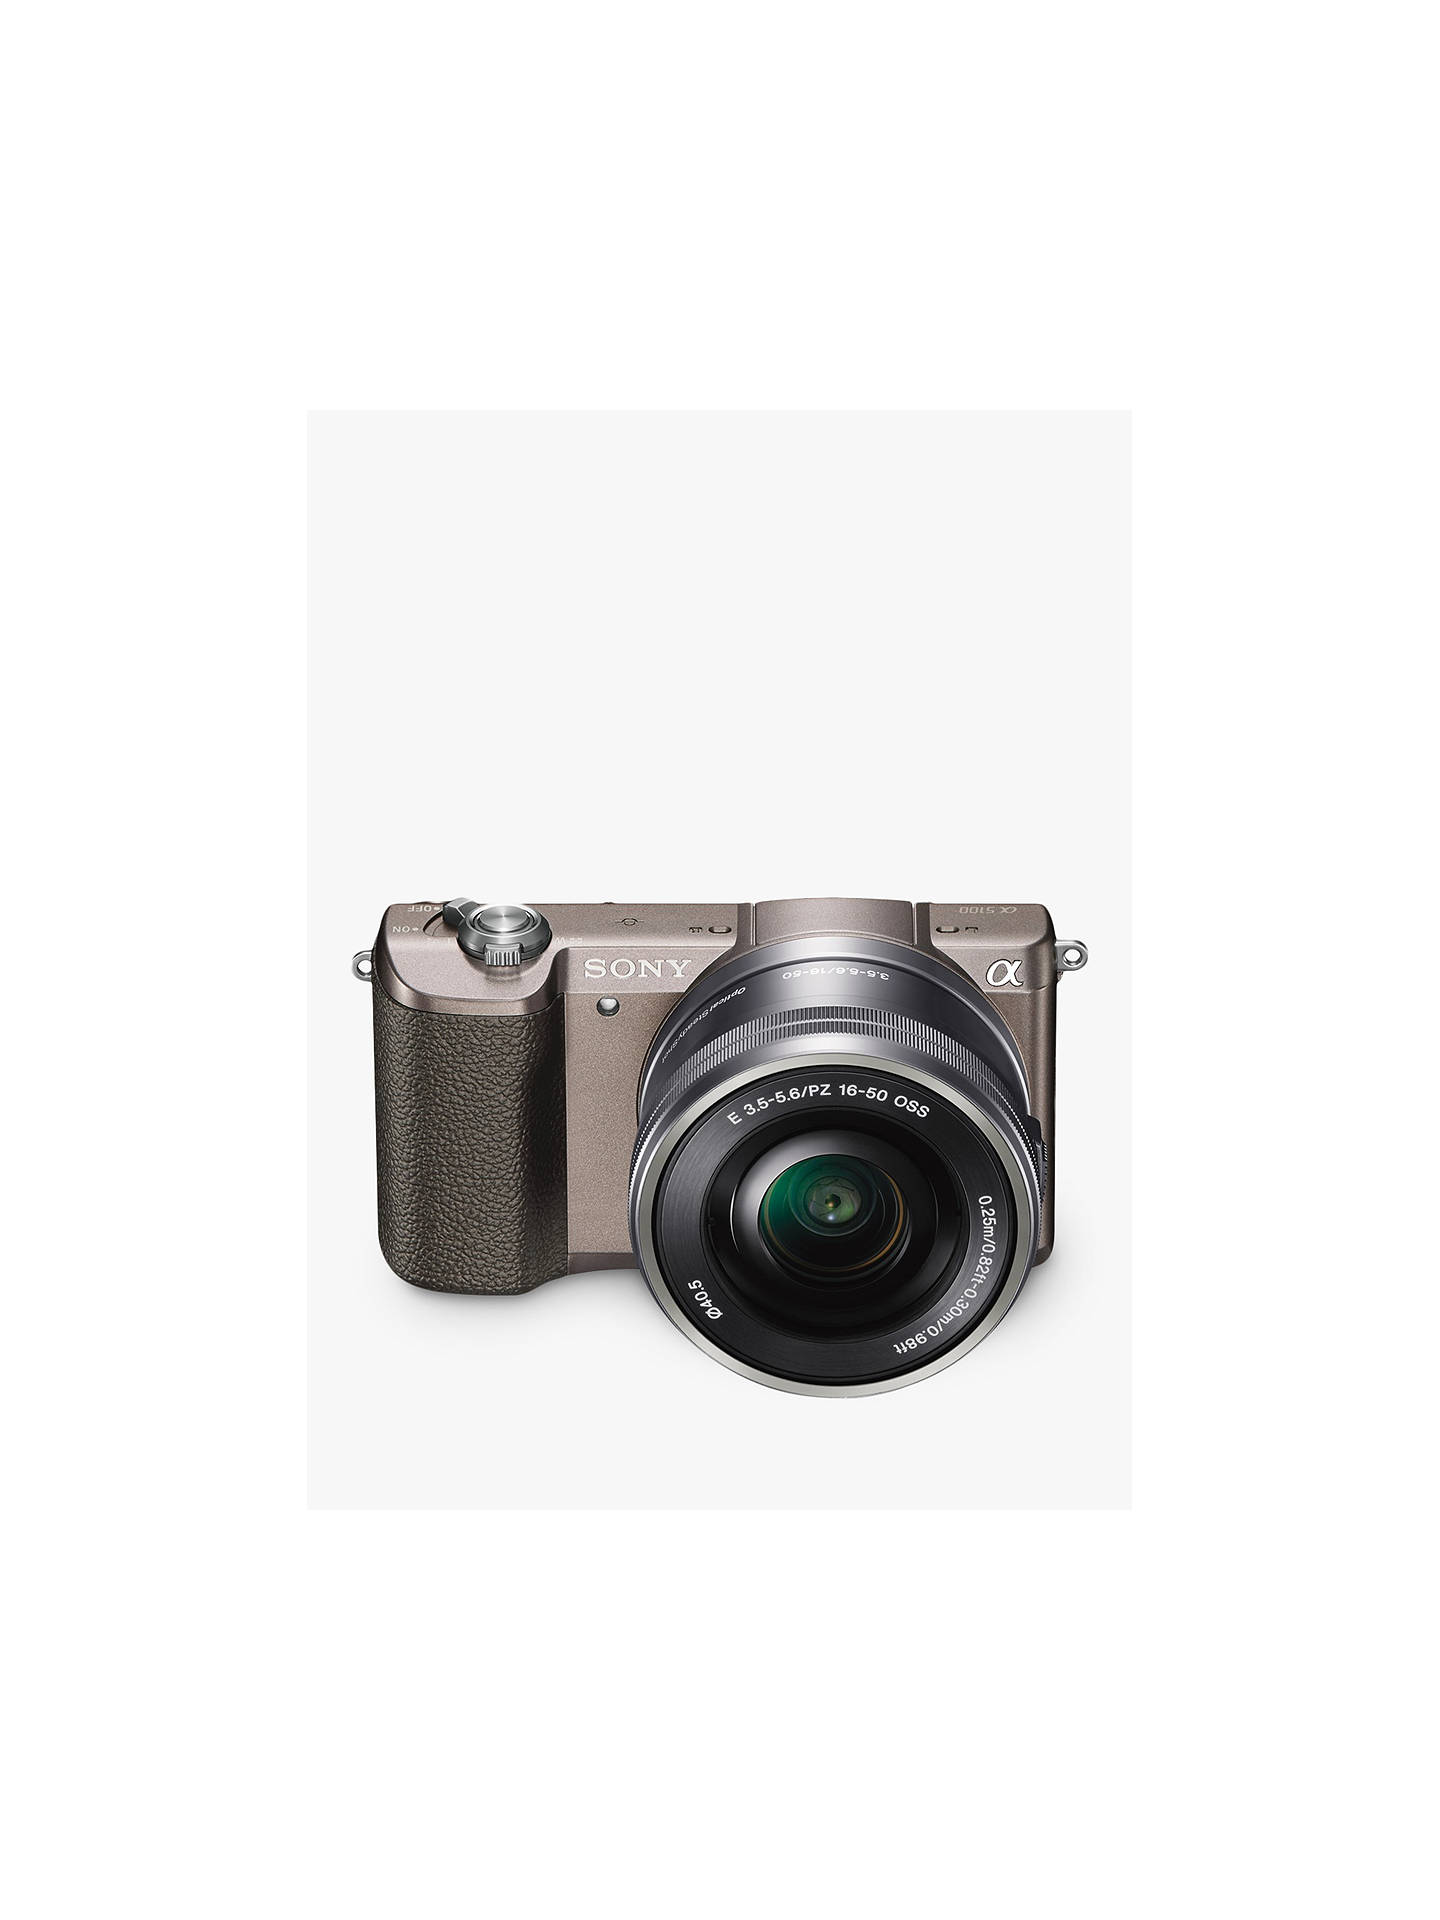 "BuySony A5100 Compact System Camera with 16-50mm OSS Lens, HD 1080p, 24.3MP, Wi-Fi, NFC, OLED, 3"" Tilting Touch Screen with 32GB Memory Card, Brown Online at johnlewis.com"